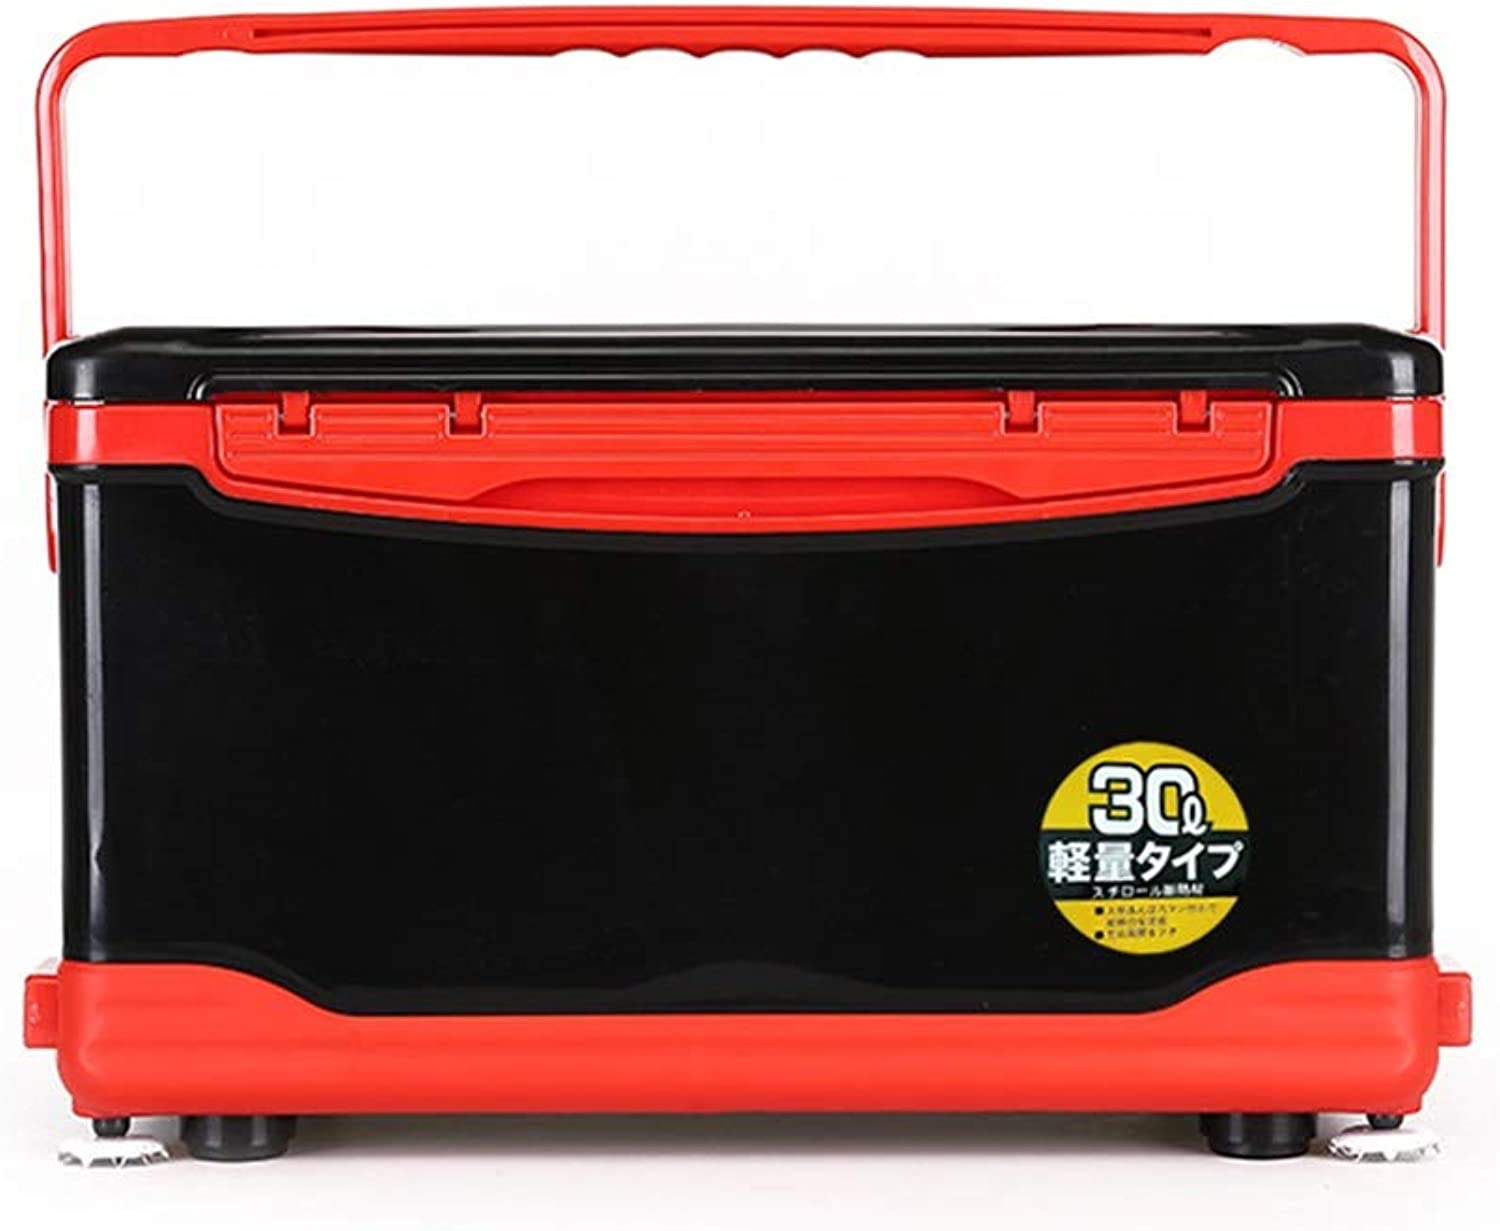 30L Insulation Fishing Box with Seat,Fishing Live Bait Coolers Cold Storage Time 72h,Four-Legged Lift